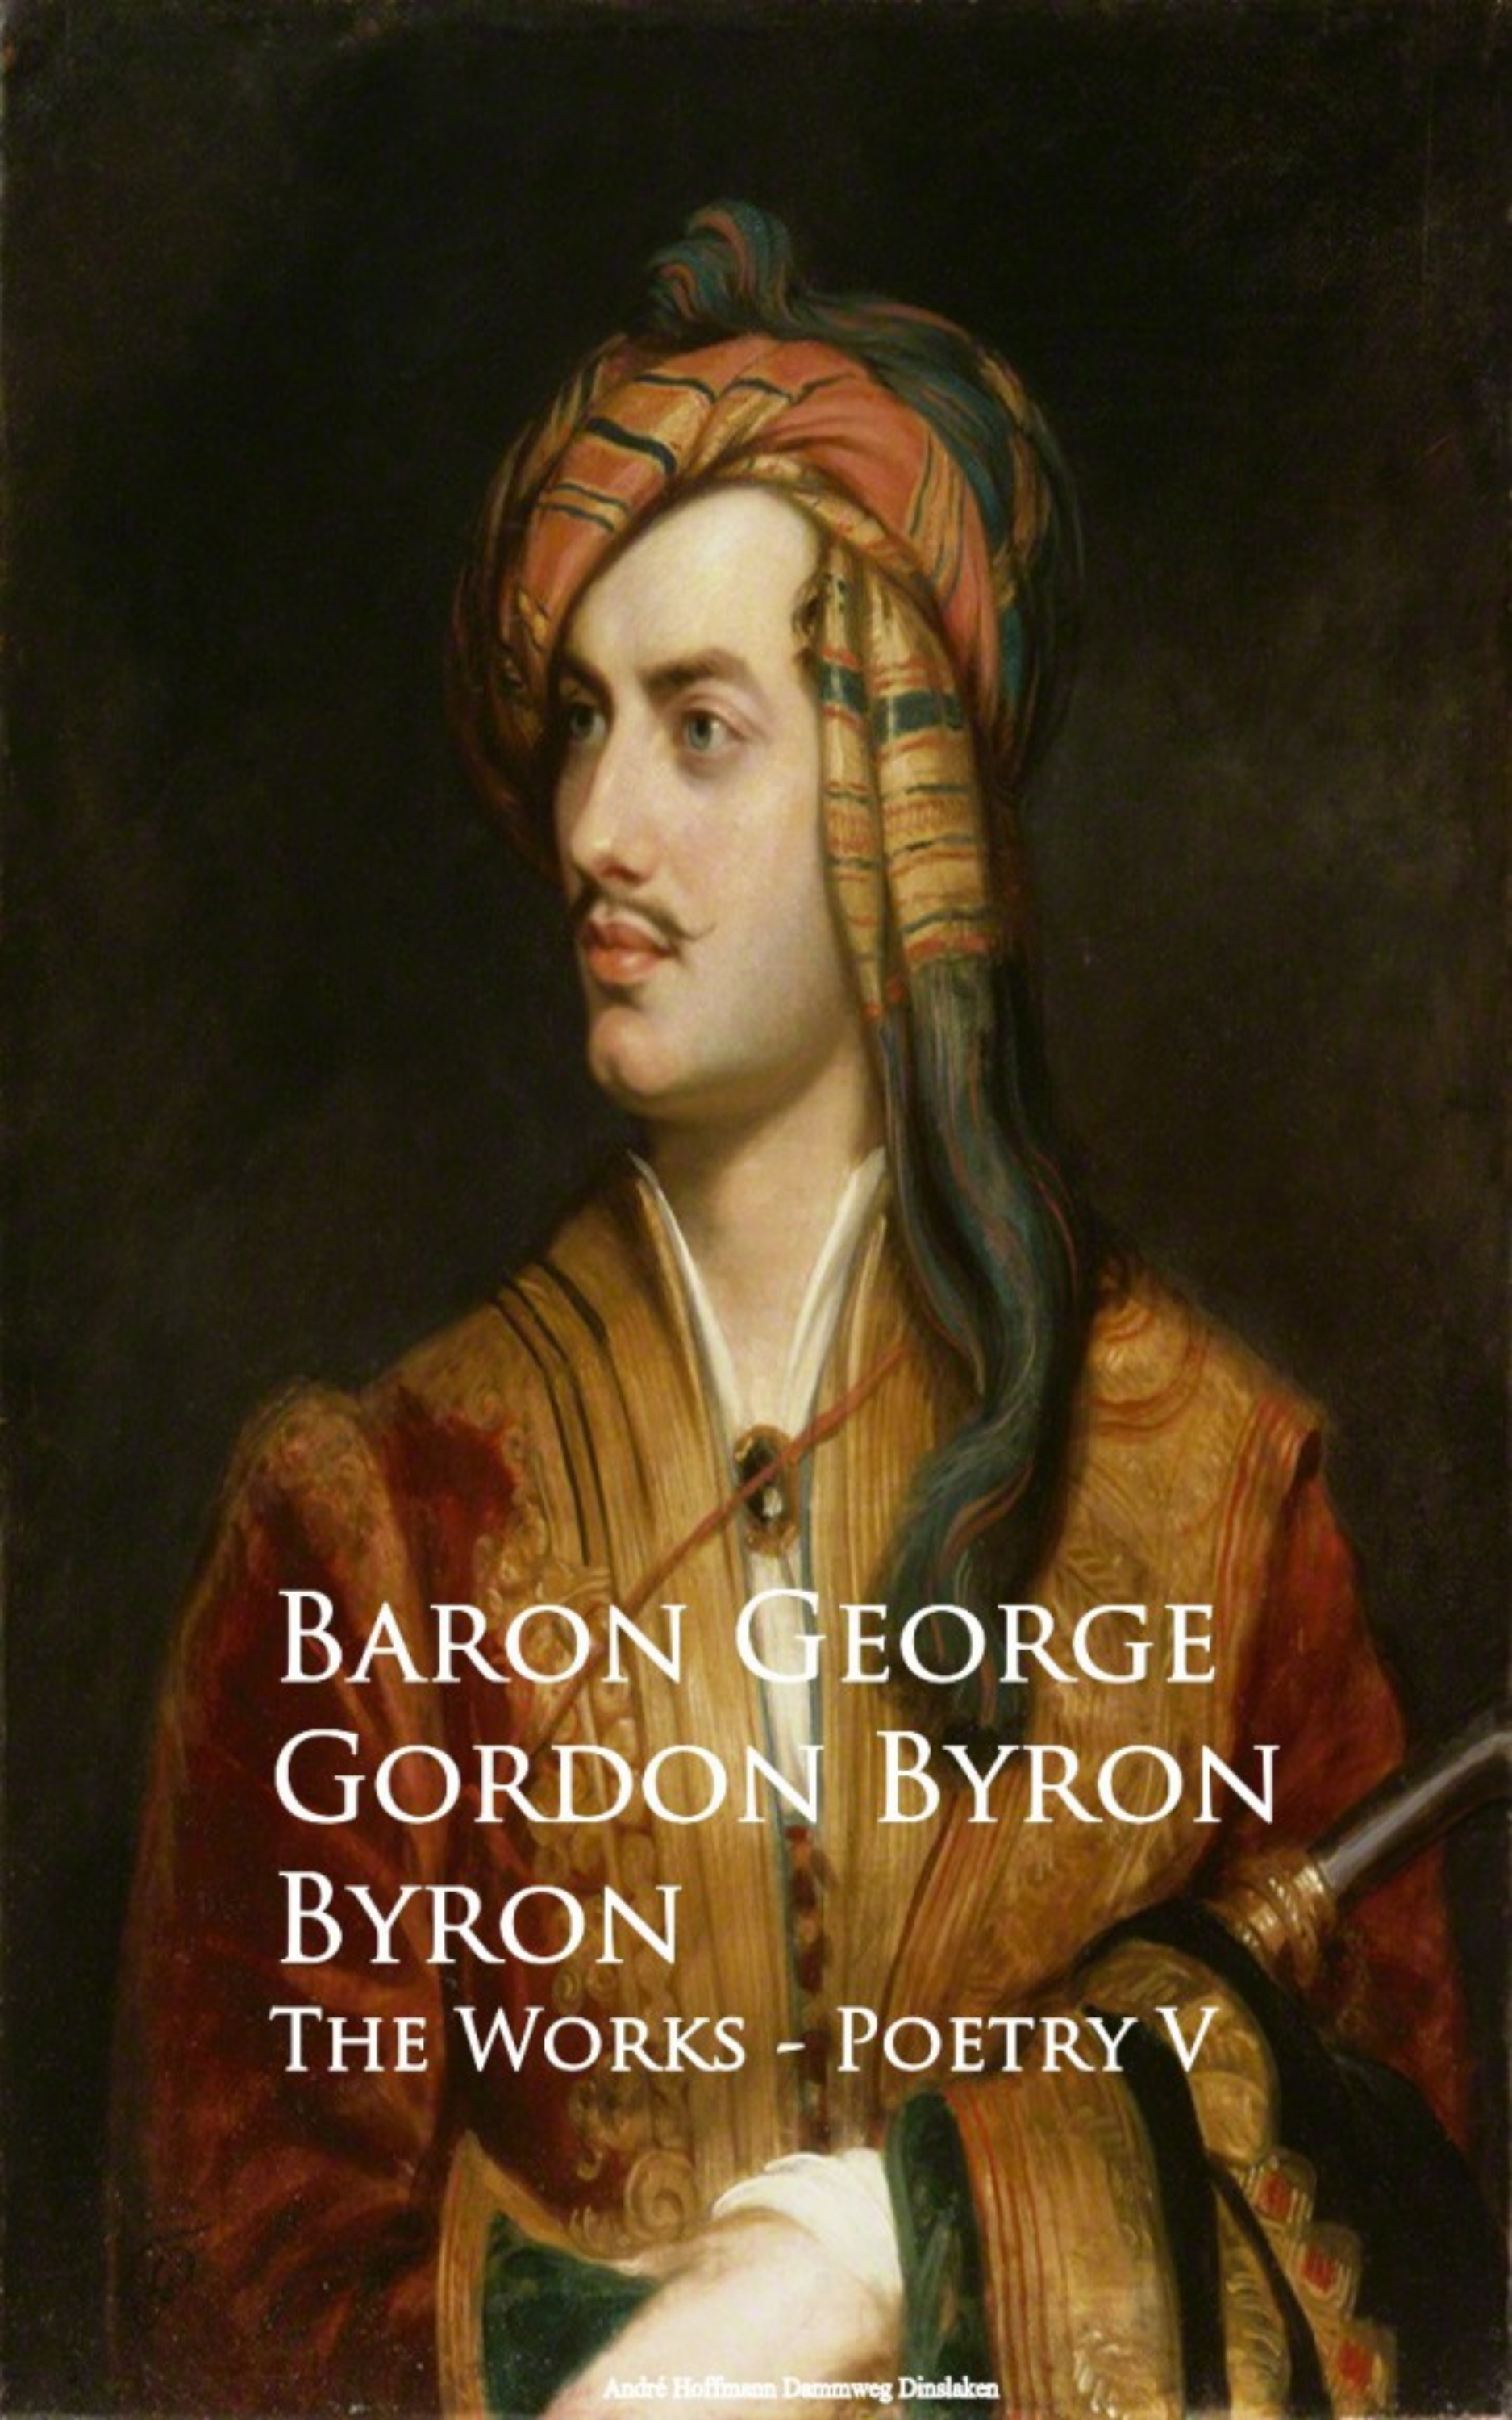 Baron George Gordon Byron Byron - The Works - Poetry V george gordon byron childe harold s pilgrimage canto the third